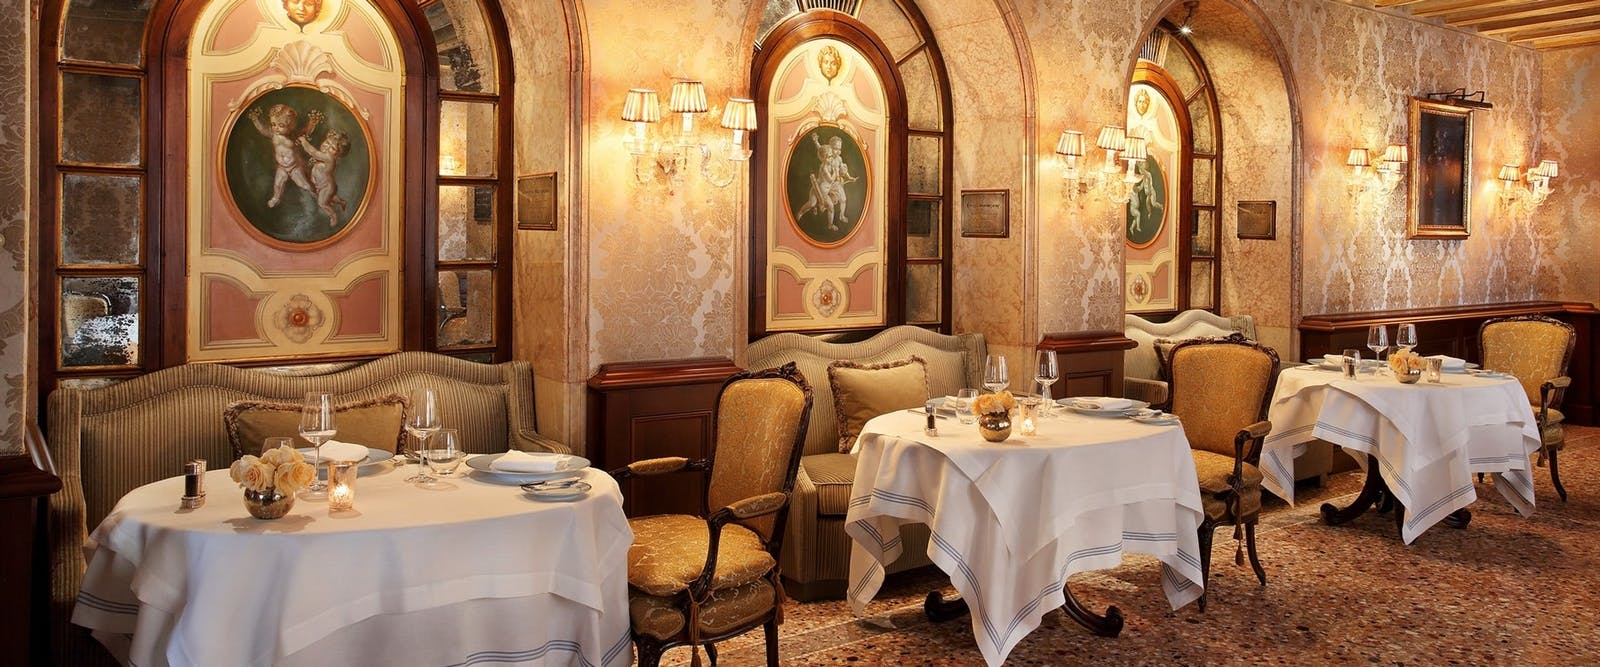 Club Del Doge Restaurant at Gritti Palace, Venice, Italy